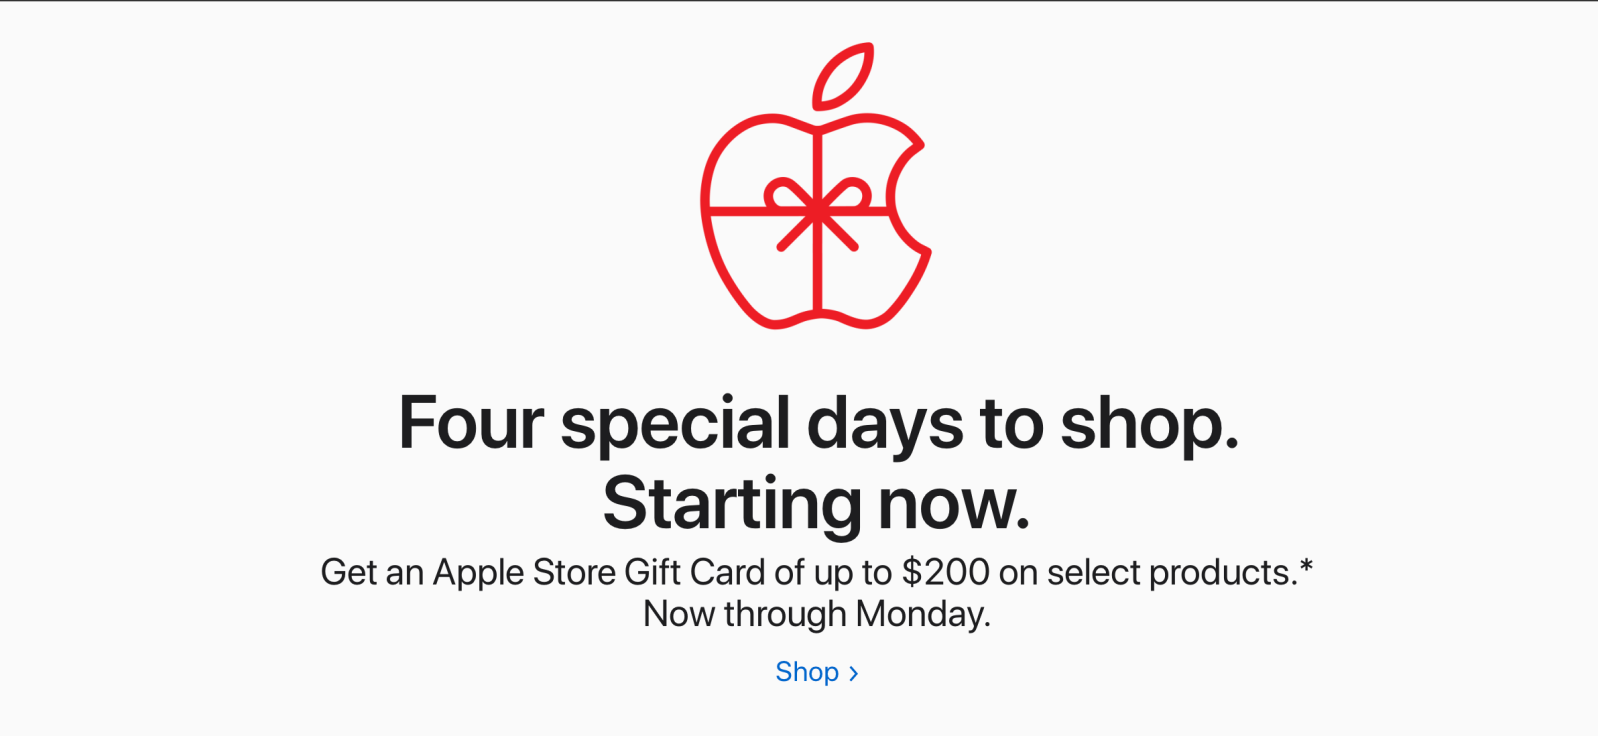 Apple Store Black Friday promotion live in the United States, get a gift card up to $200 value